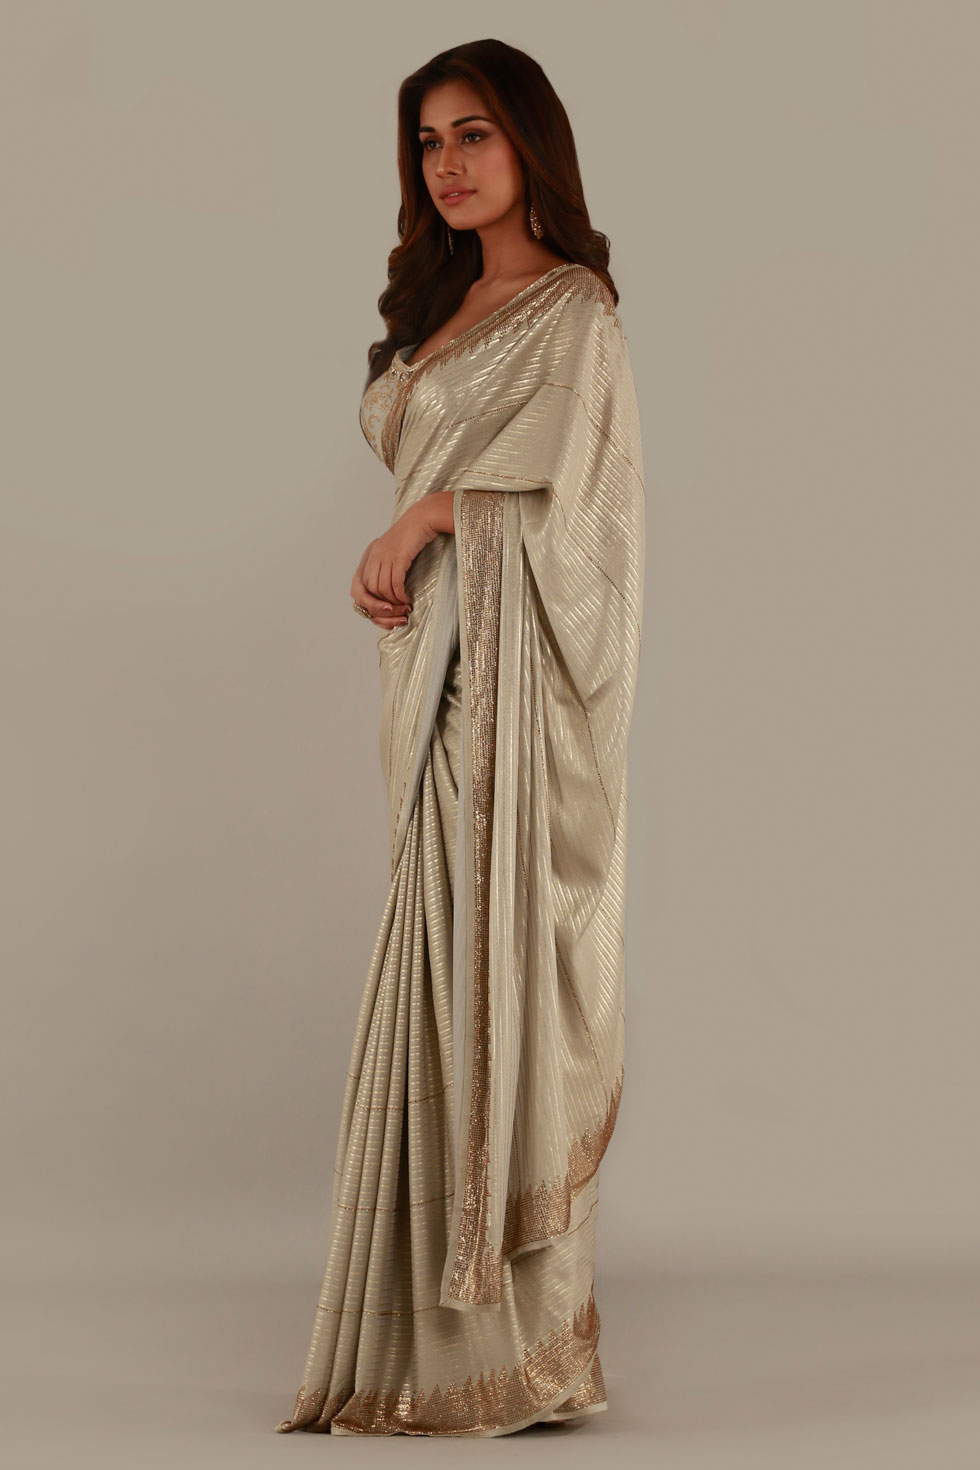 Beige gold classic saree with matching pallu and border and blouse with gold embellishments